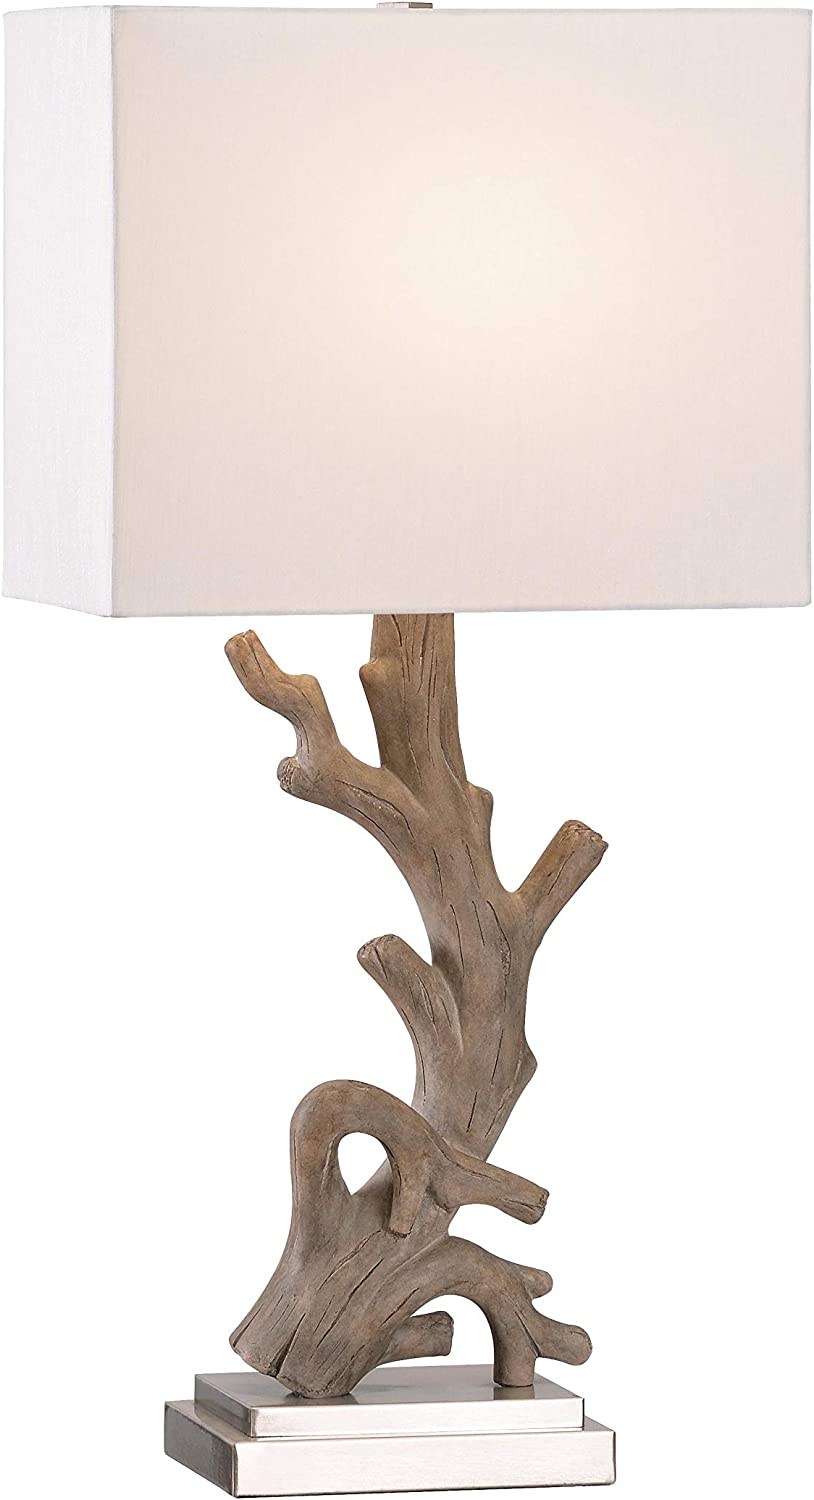 Kenroy Home 21049DW Drift Table Lamp, Driftwood and Brushed Steel